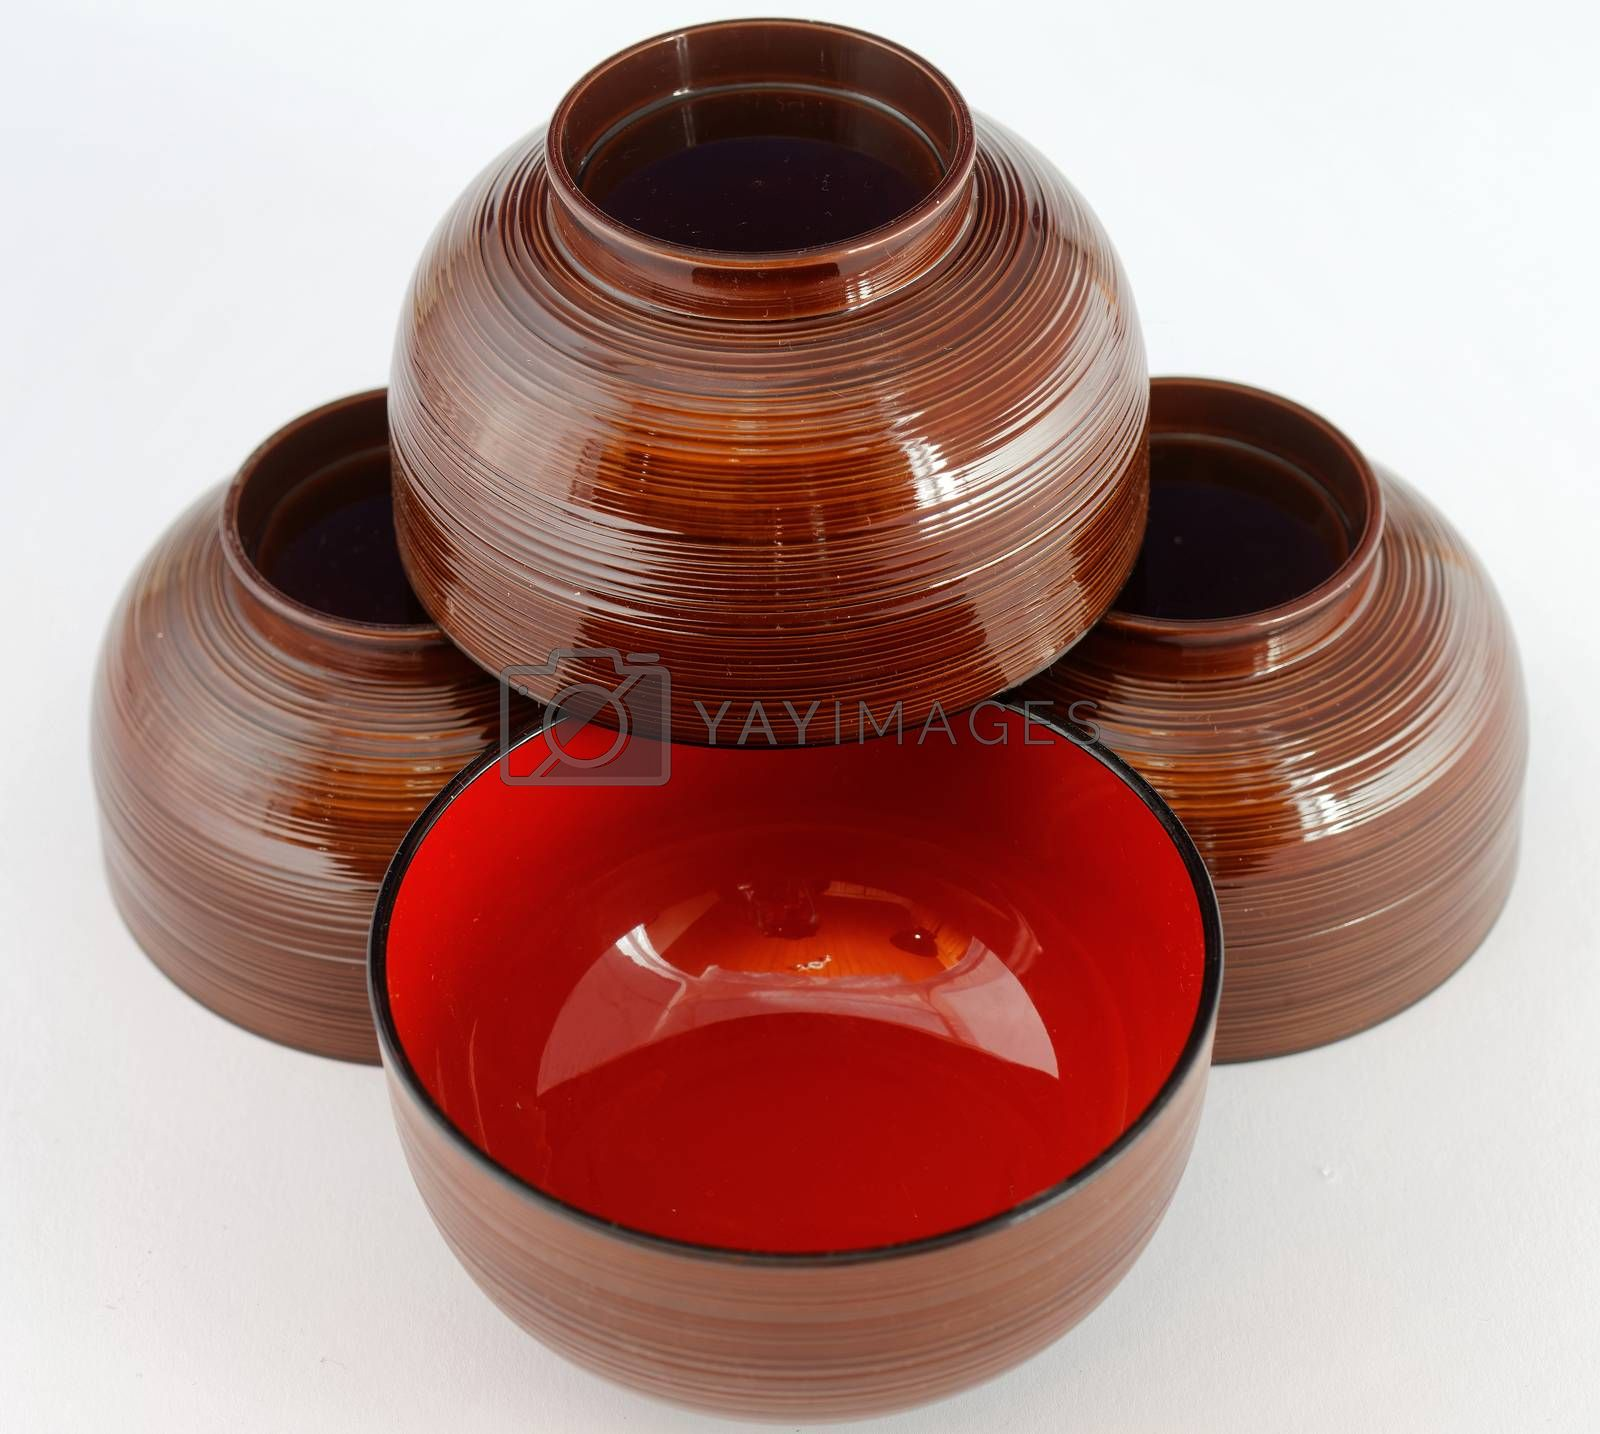 Still life of four Japanese lacquer bowls for miso soup or noodle soup, isolated